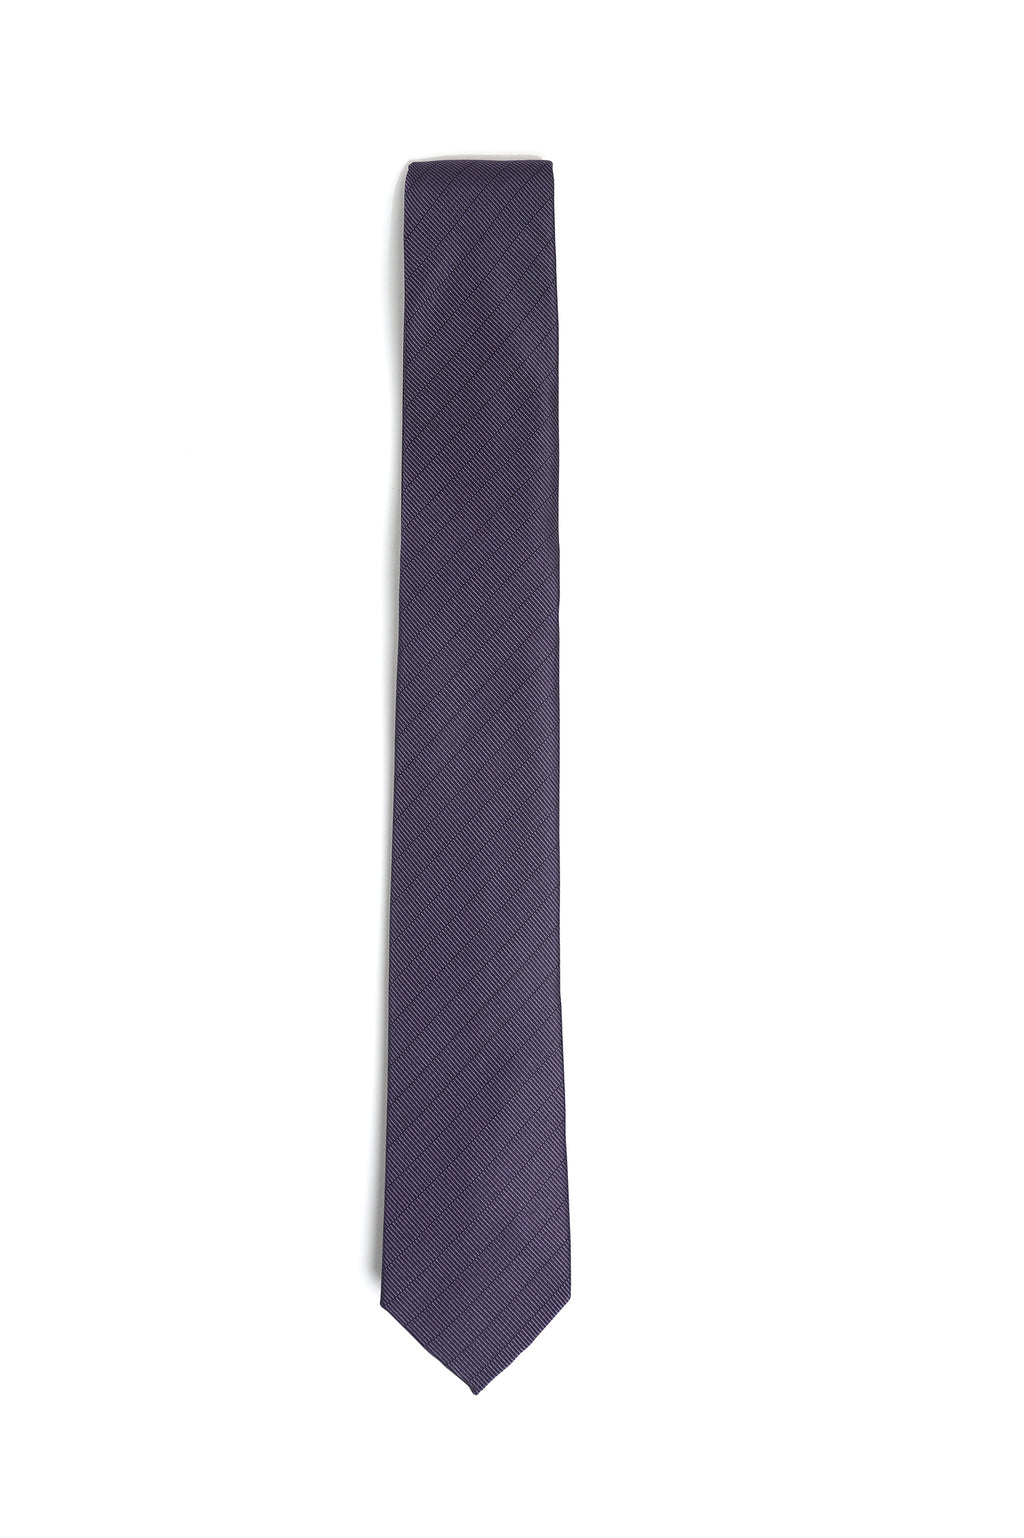 TWILL TEXTURED TIE-LIGHT-PURPLE